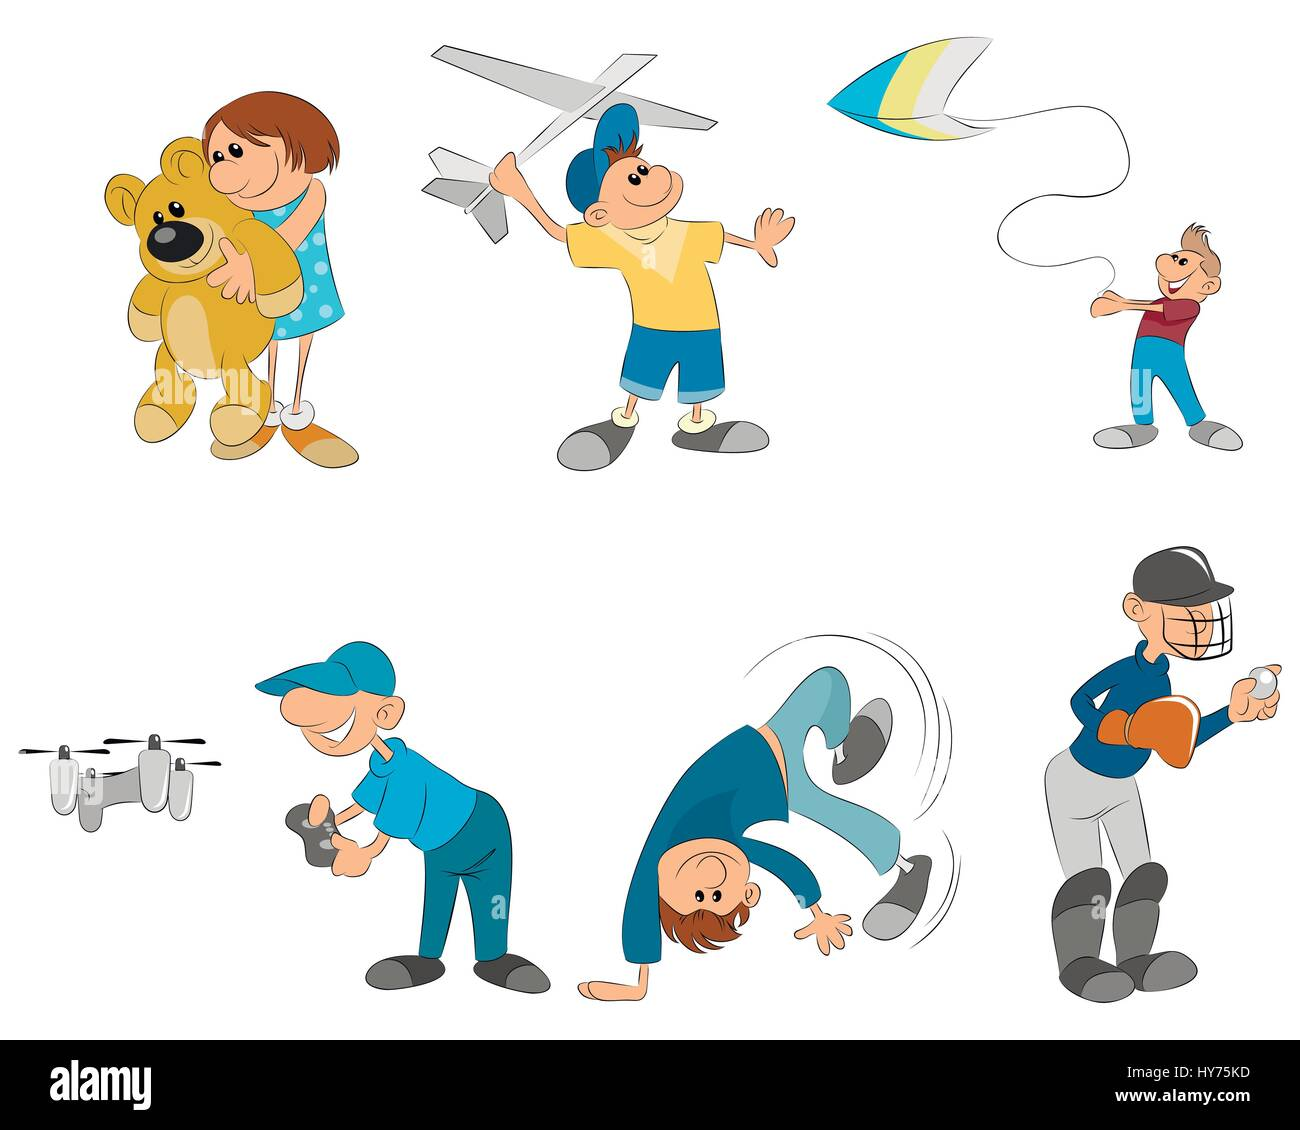 vector illustration of six kids playing - Stock Image